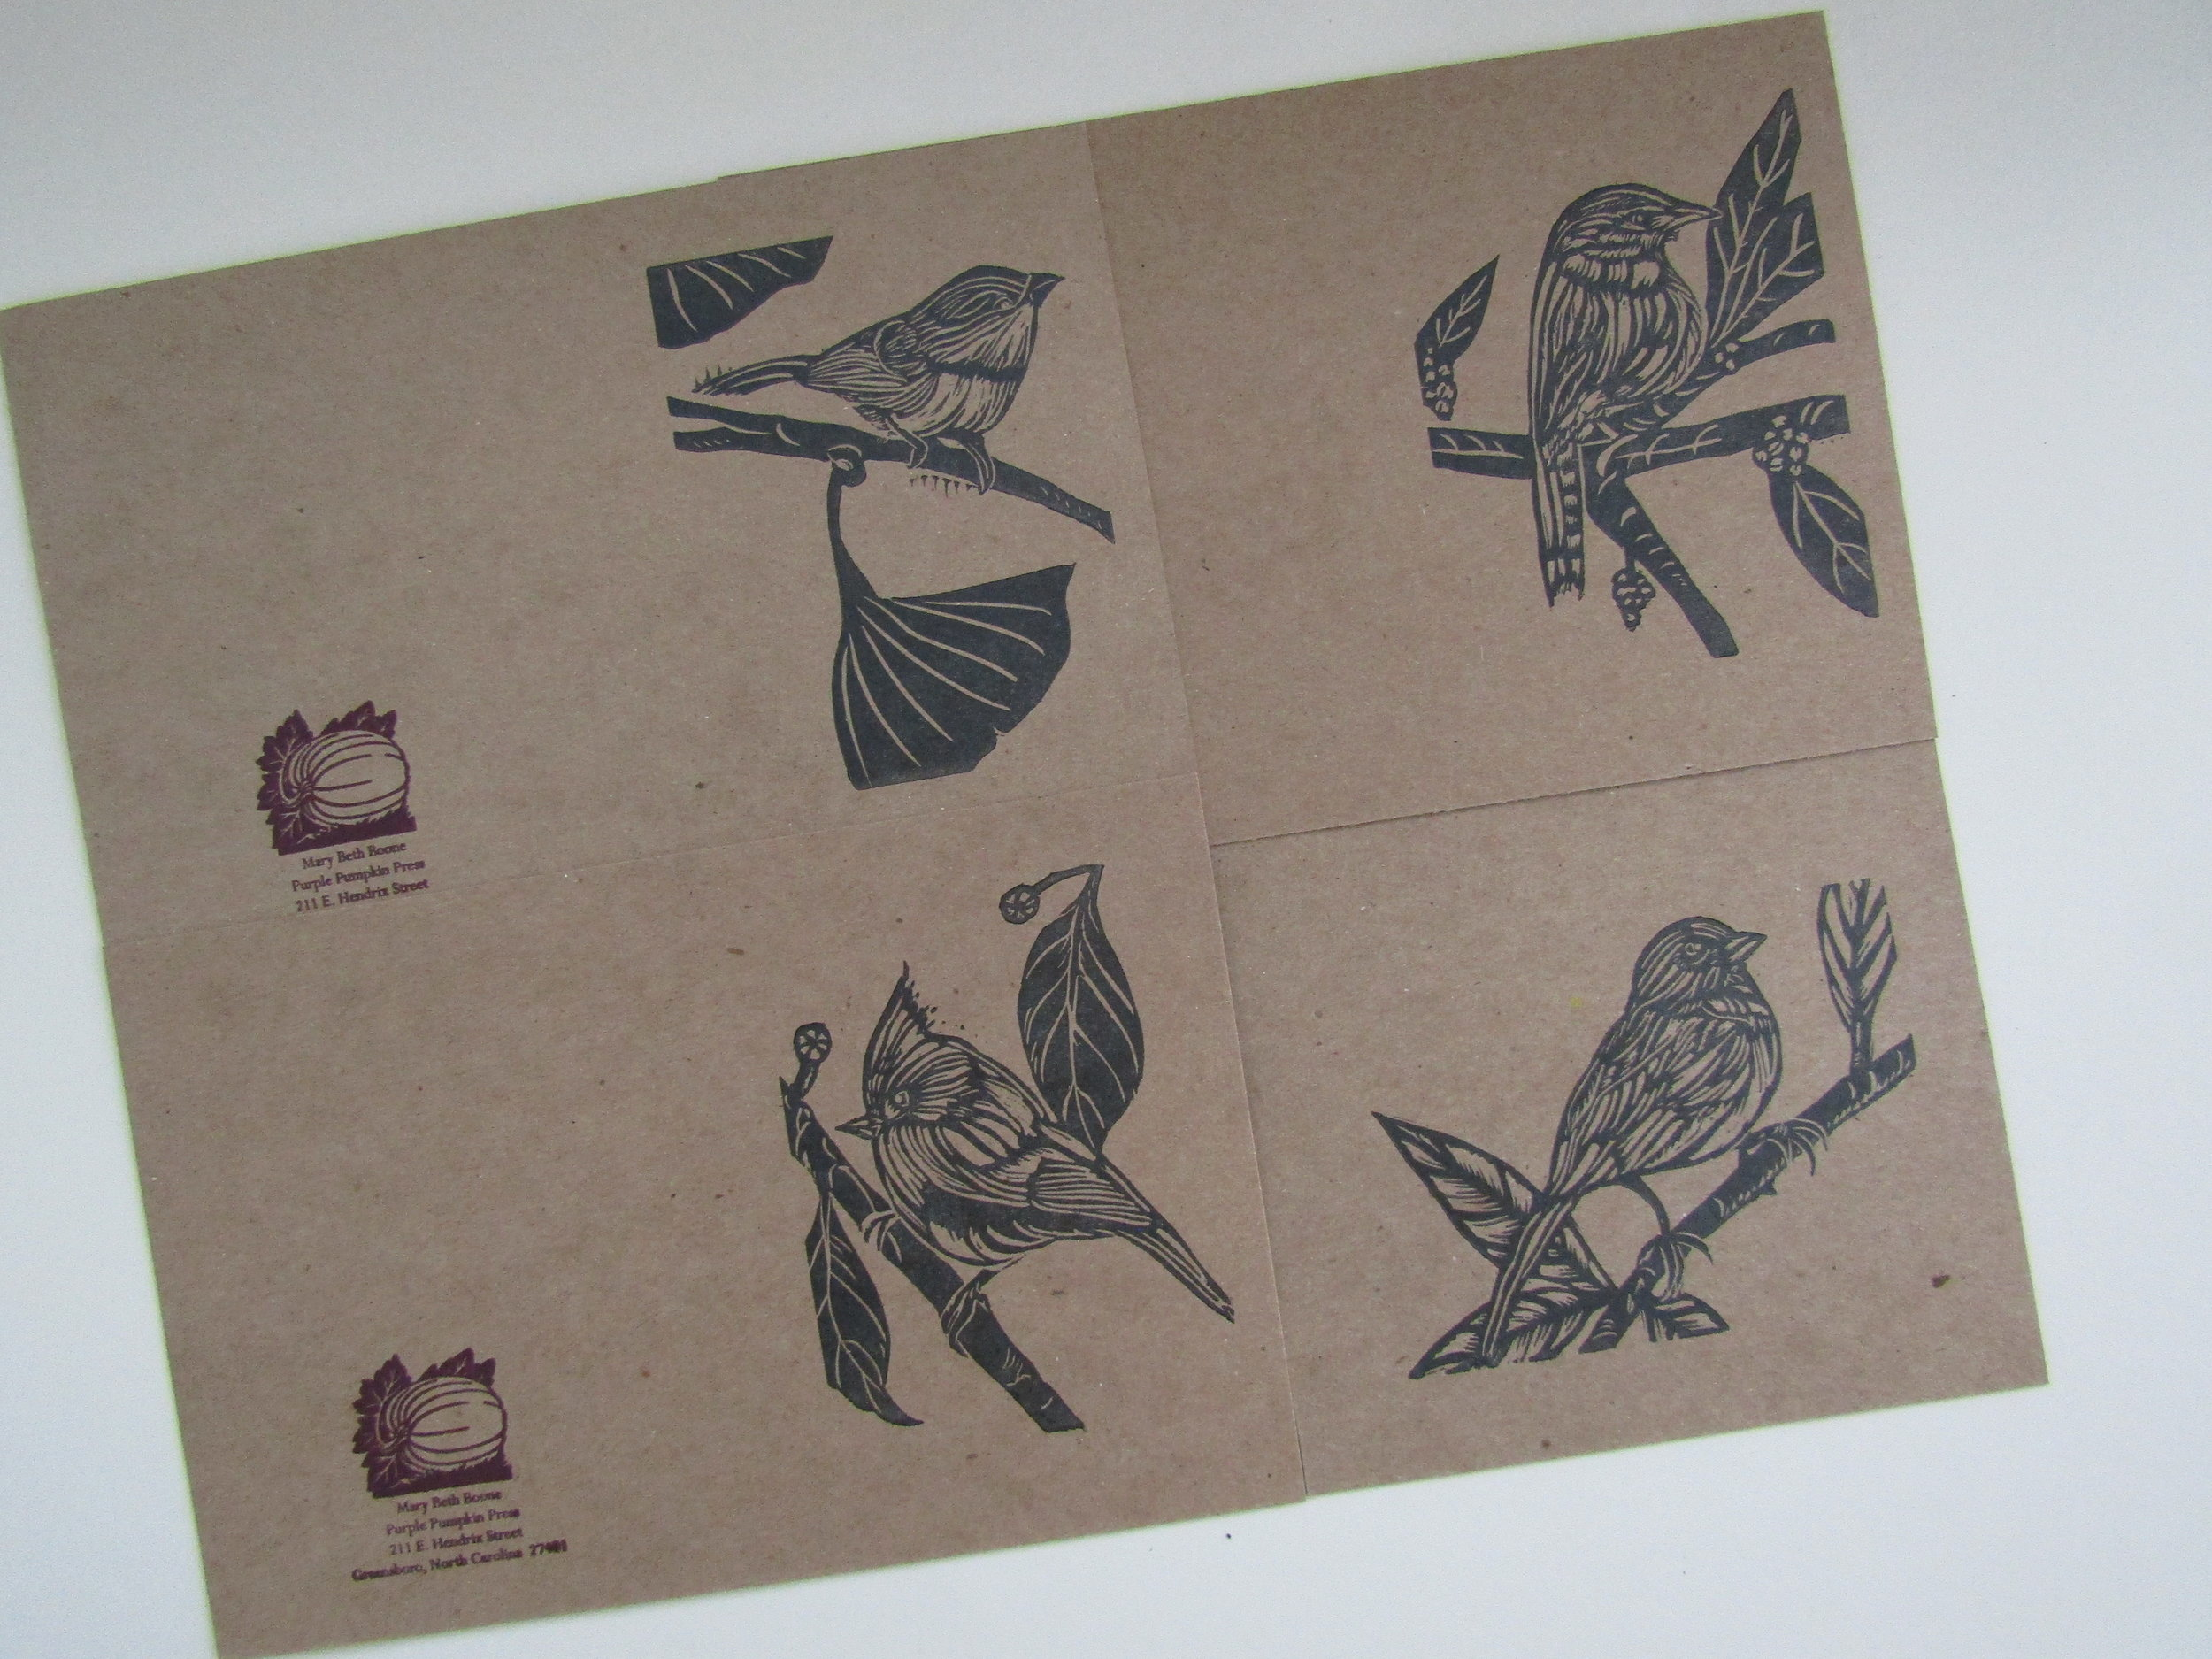 All four images have been printed! I will score, fold, and package the cards after the prints have dried.  This was a delightful group of images to print; particularly since I had carved the blocks in late October. Commission work and other commitments demanded that I sit this project aside for a later date. I hope to eventually print a small edition of these birds on handmade paper.